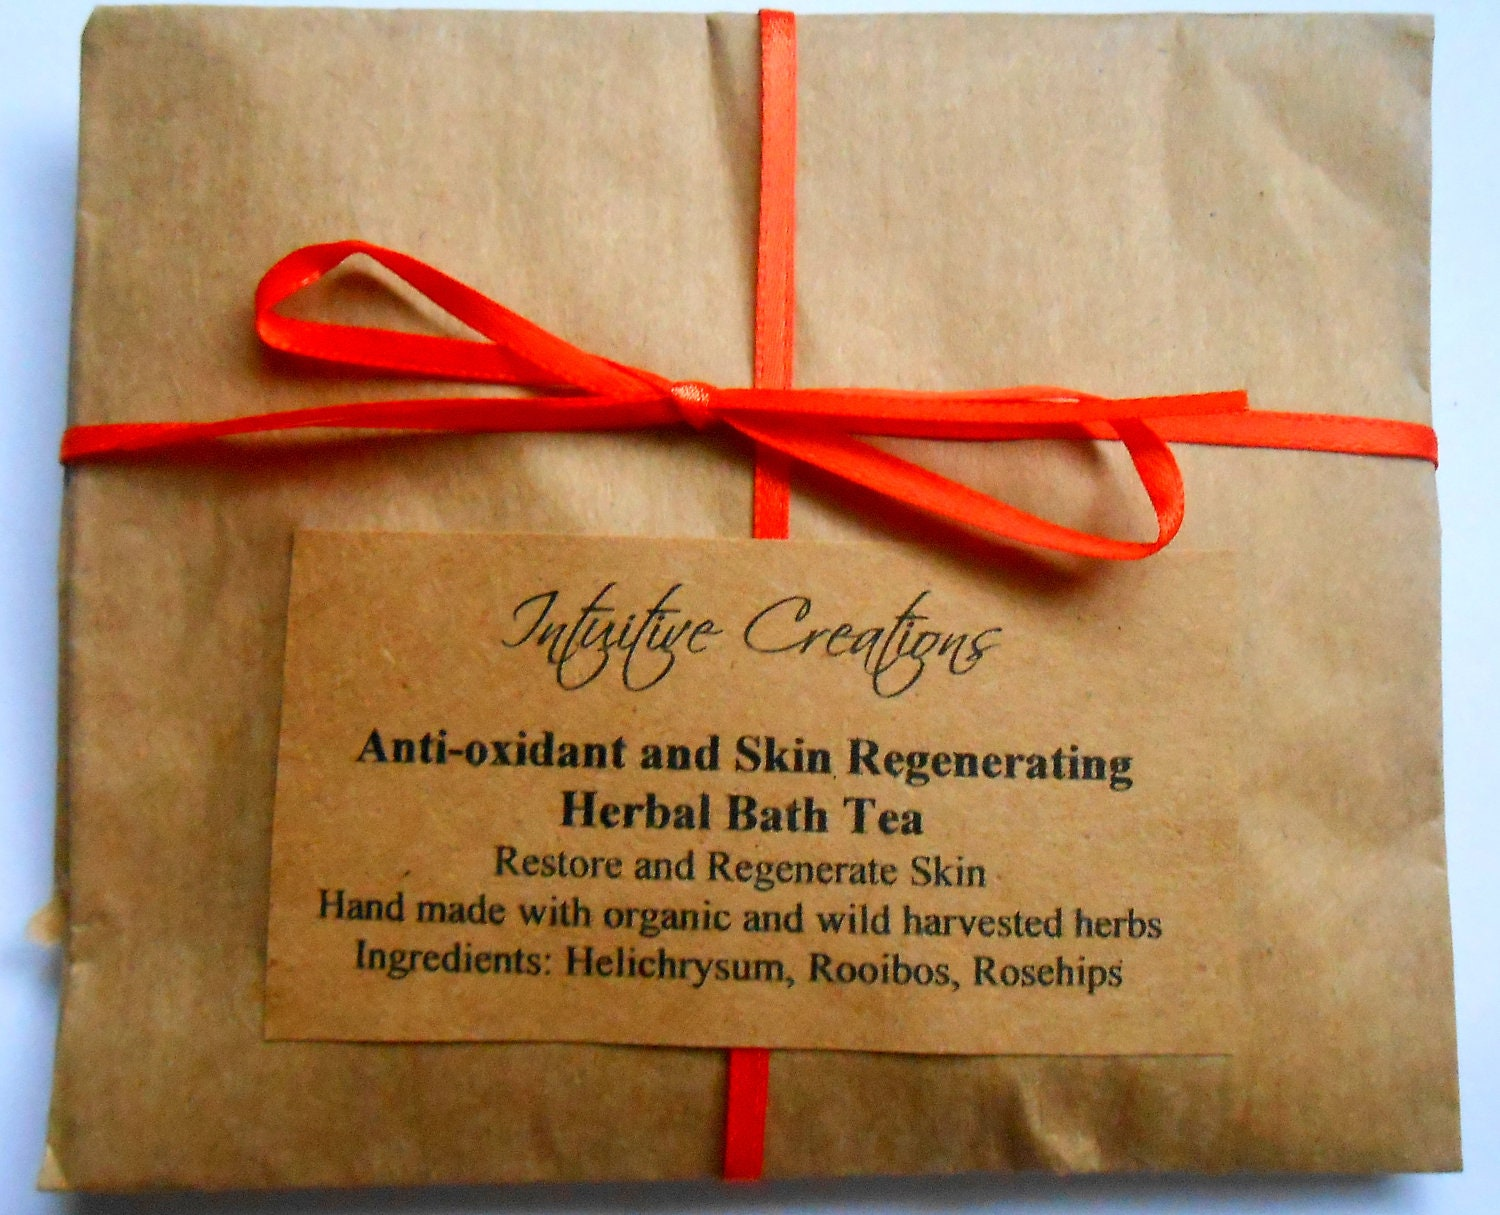 Anti-oxidant and Skin Regenerating Herbal Bath Tea Soak